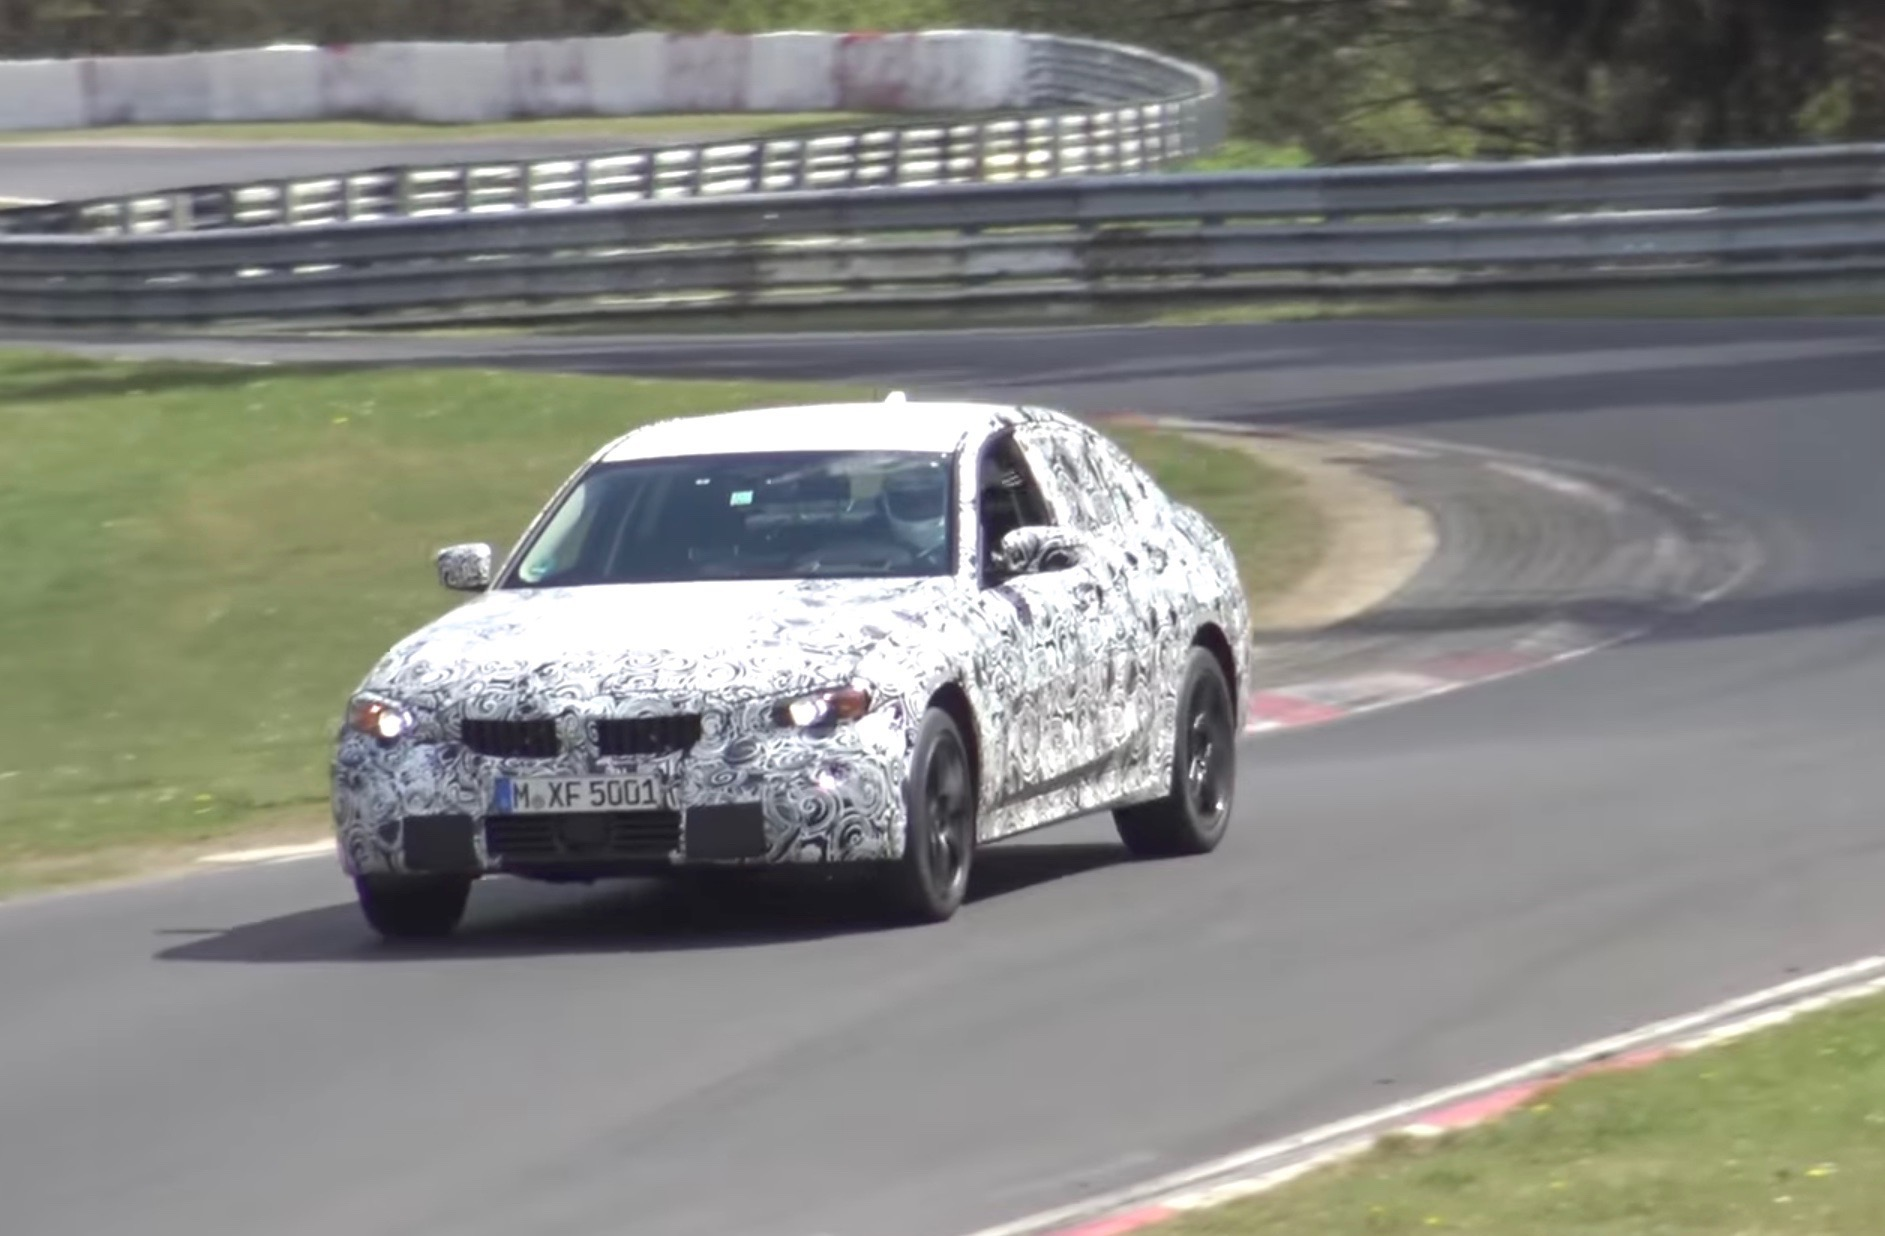 2018 bmw g20. unique g20 the prototype sounds suspiciously quiet out on the nurburgring and  nurburgring is located in a very peaceful area hills west germany intended 2018 bmw g20 o